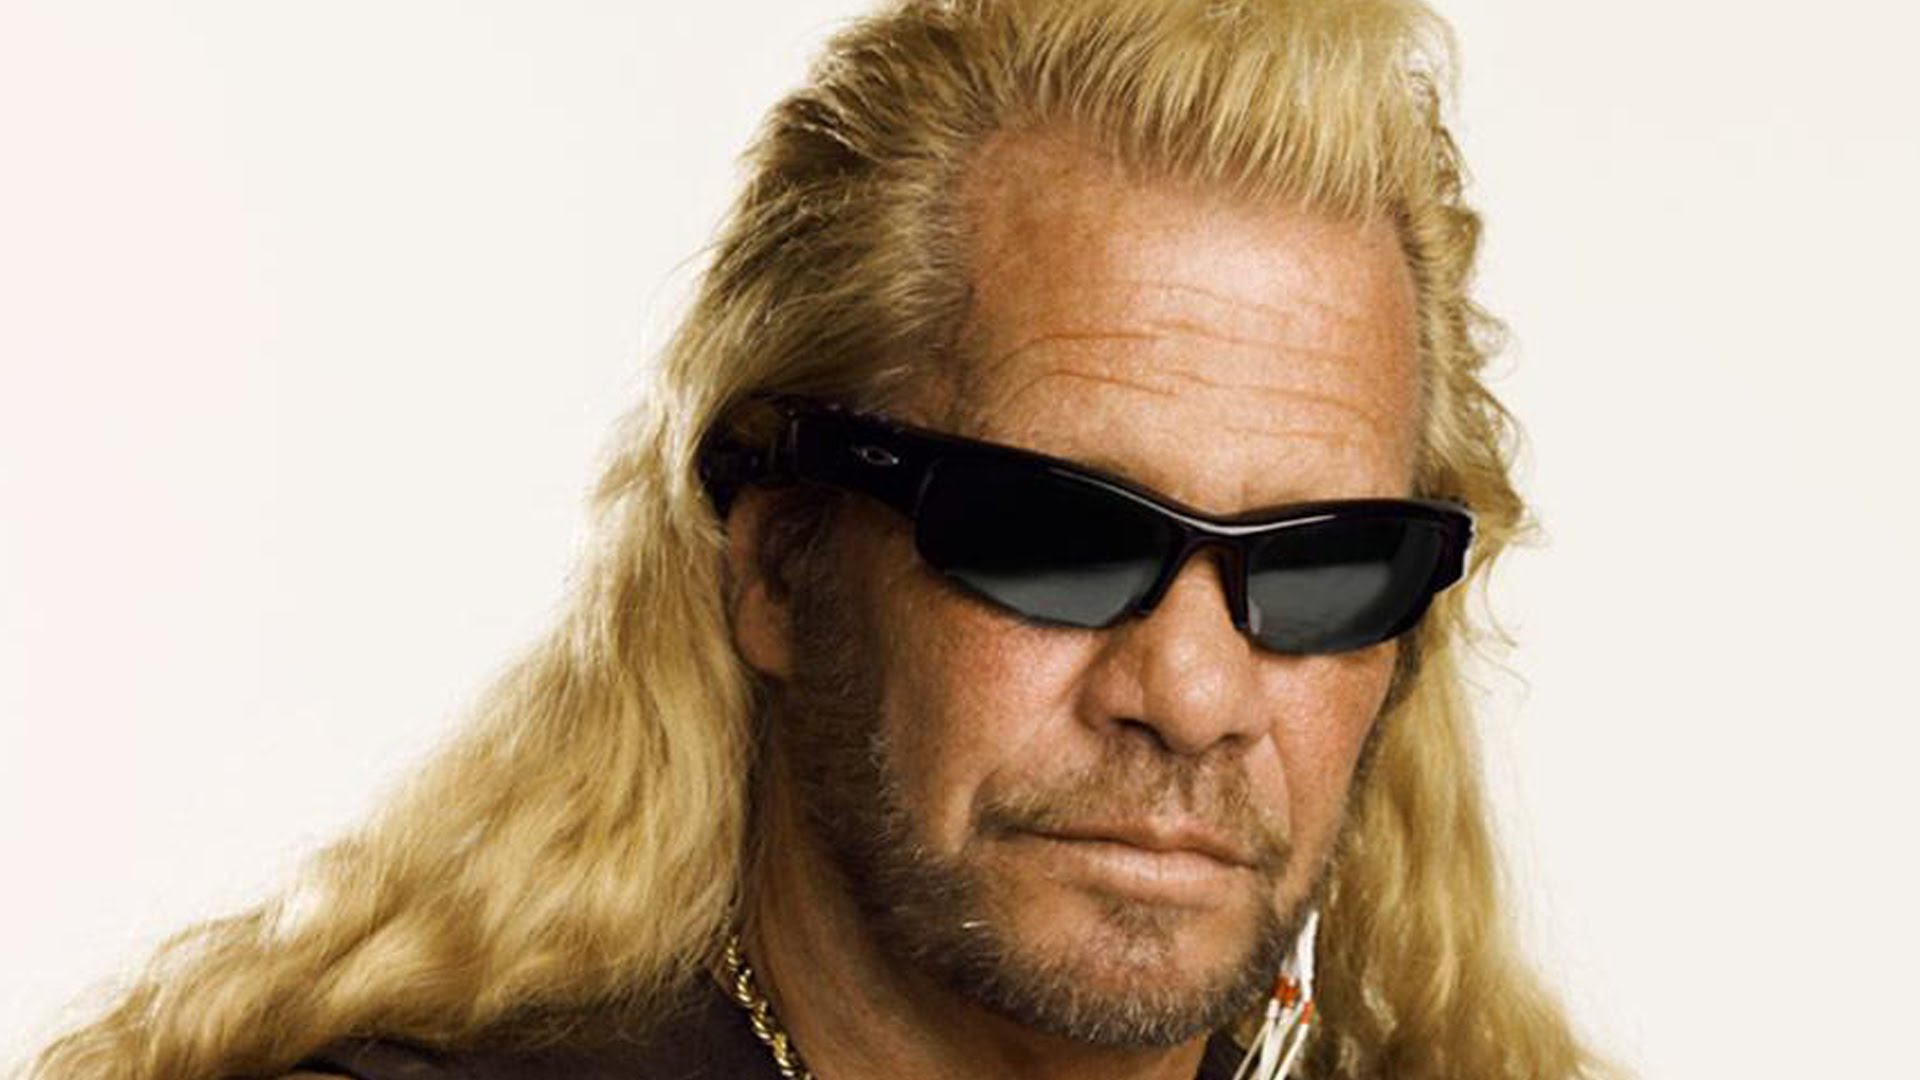 Amazoncom Dog The Bounty Hunter Taking It To The Streets DVD Duane Chapman Various Movies amp TV